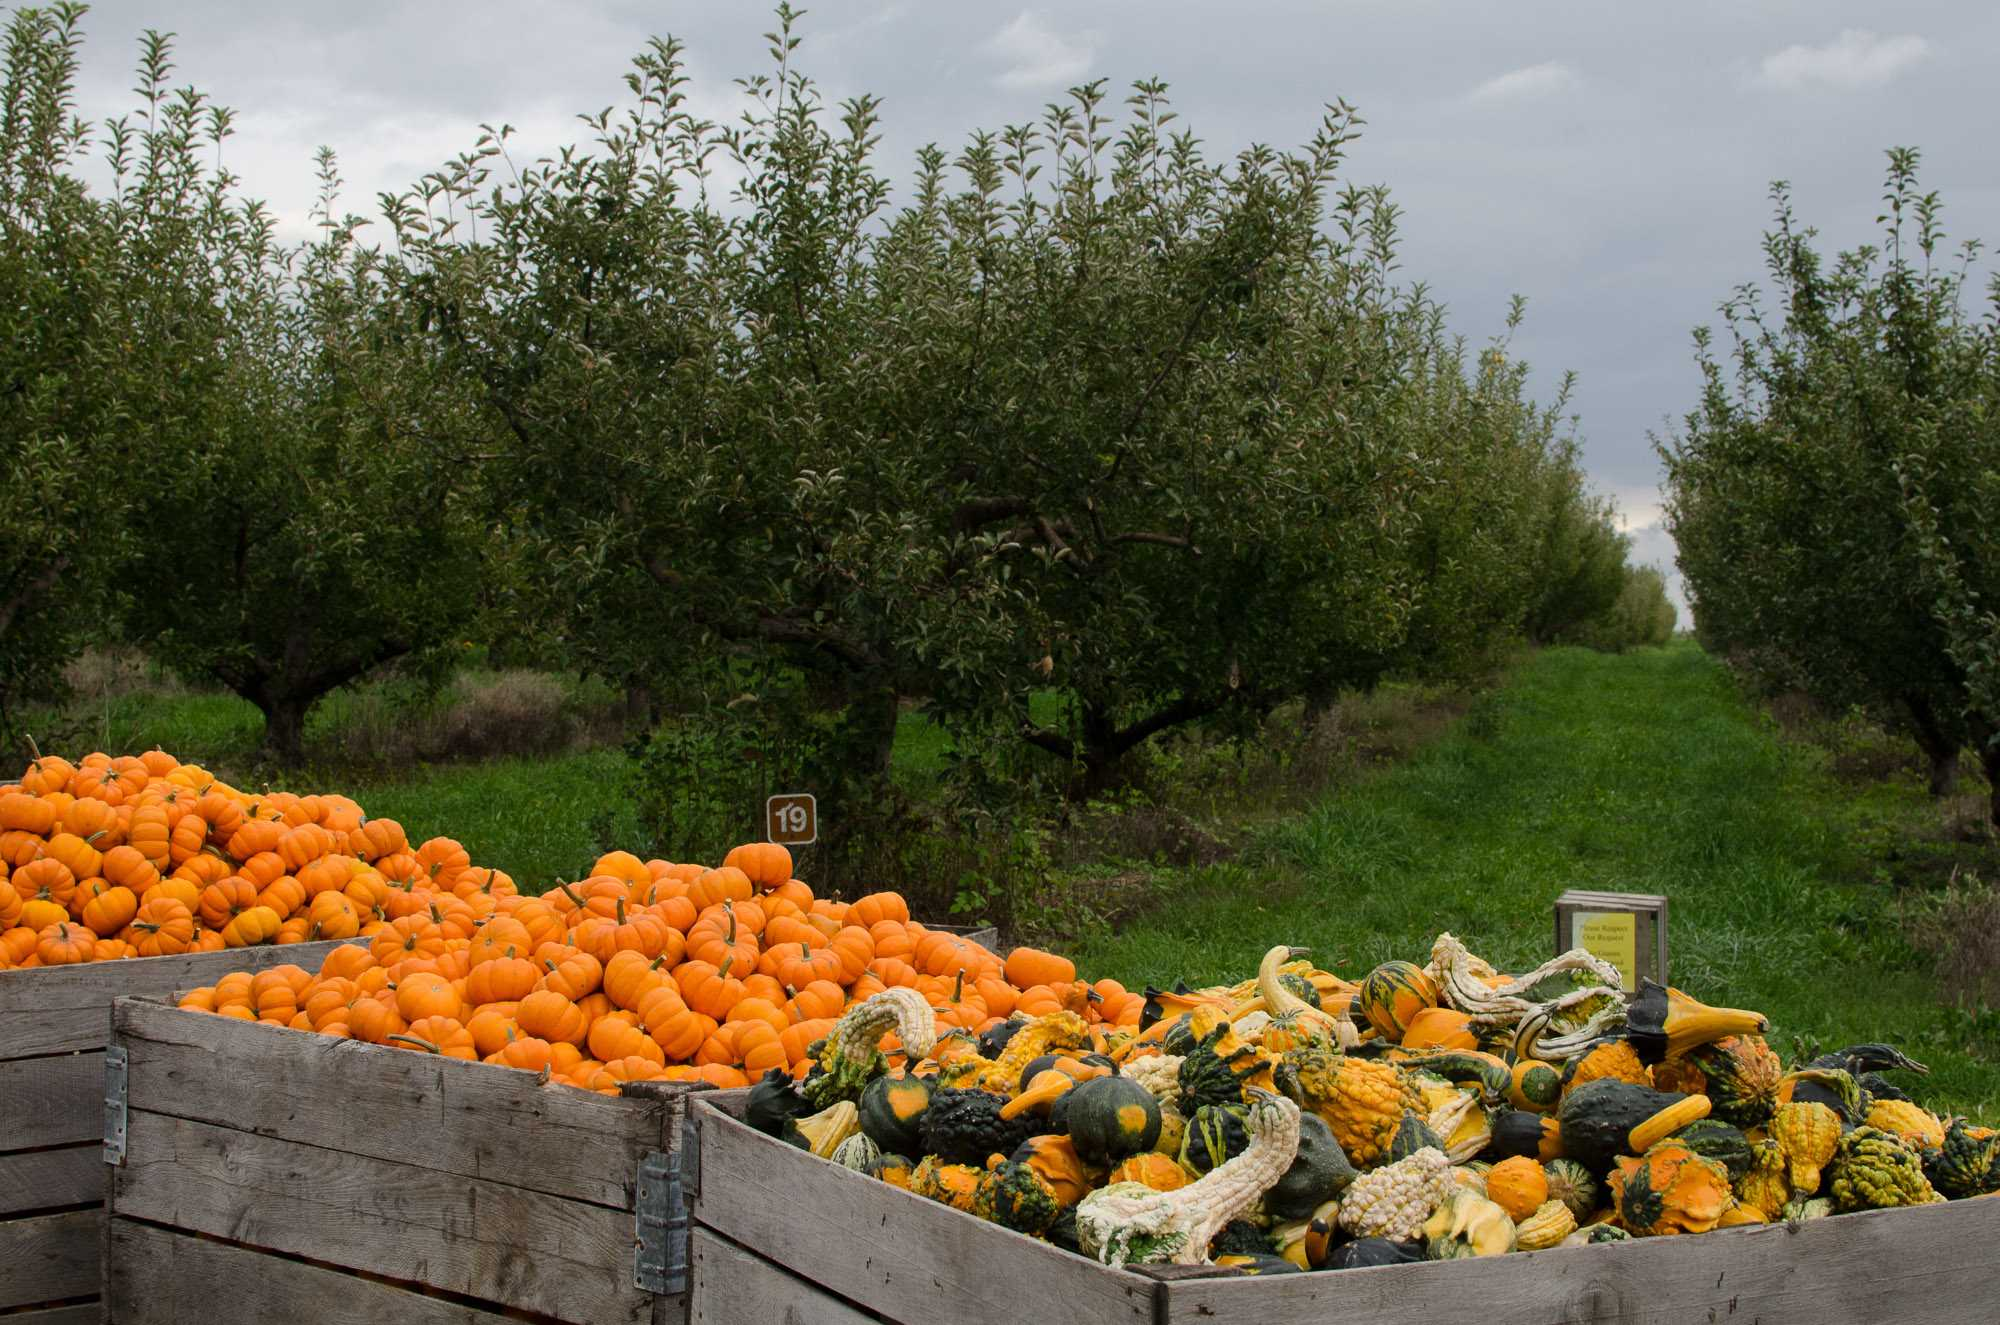 Containers filled with squash and pumpkins at Curtis Orchard & Pumpkin Patch during the fall. Buzz editor Elani writes about interesting spots students can visit off-campus.